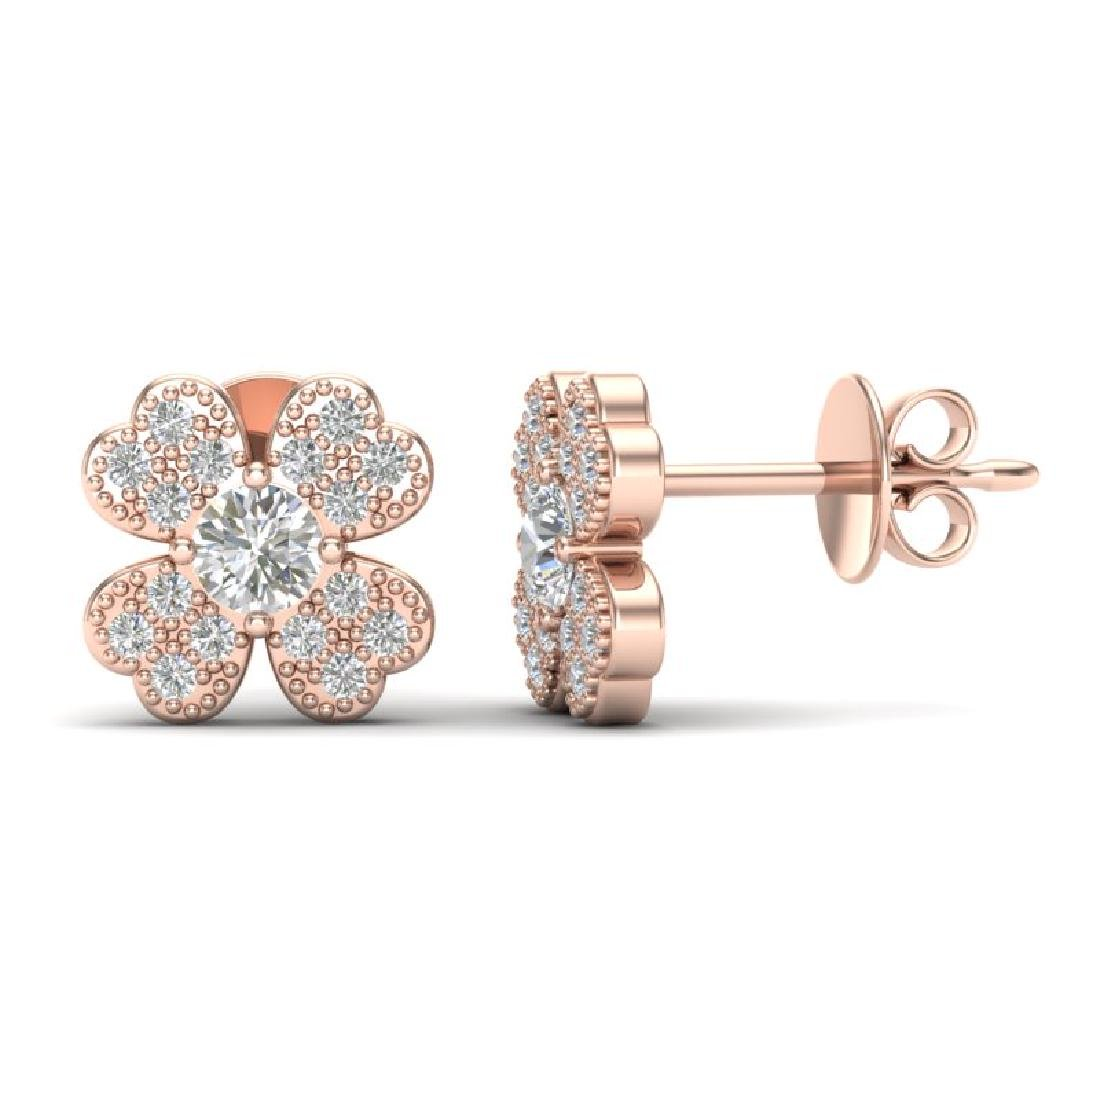 0.54 CTW Micro Pave VS/SI Diamond Earrings 14K Rose - 2